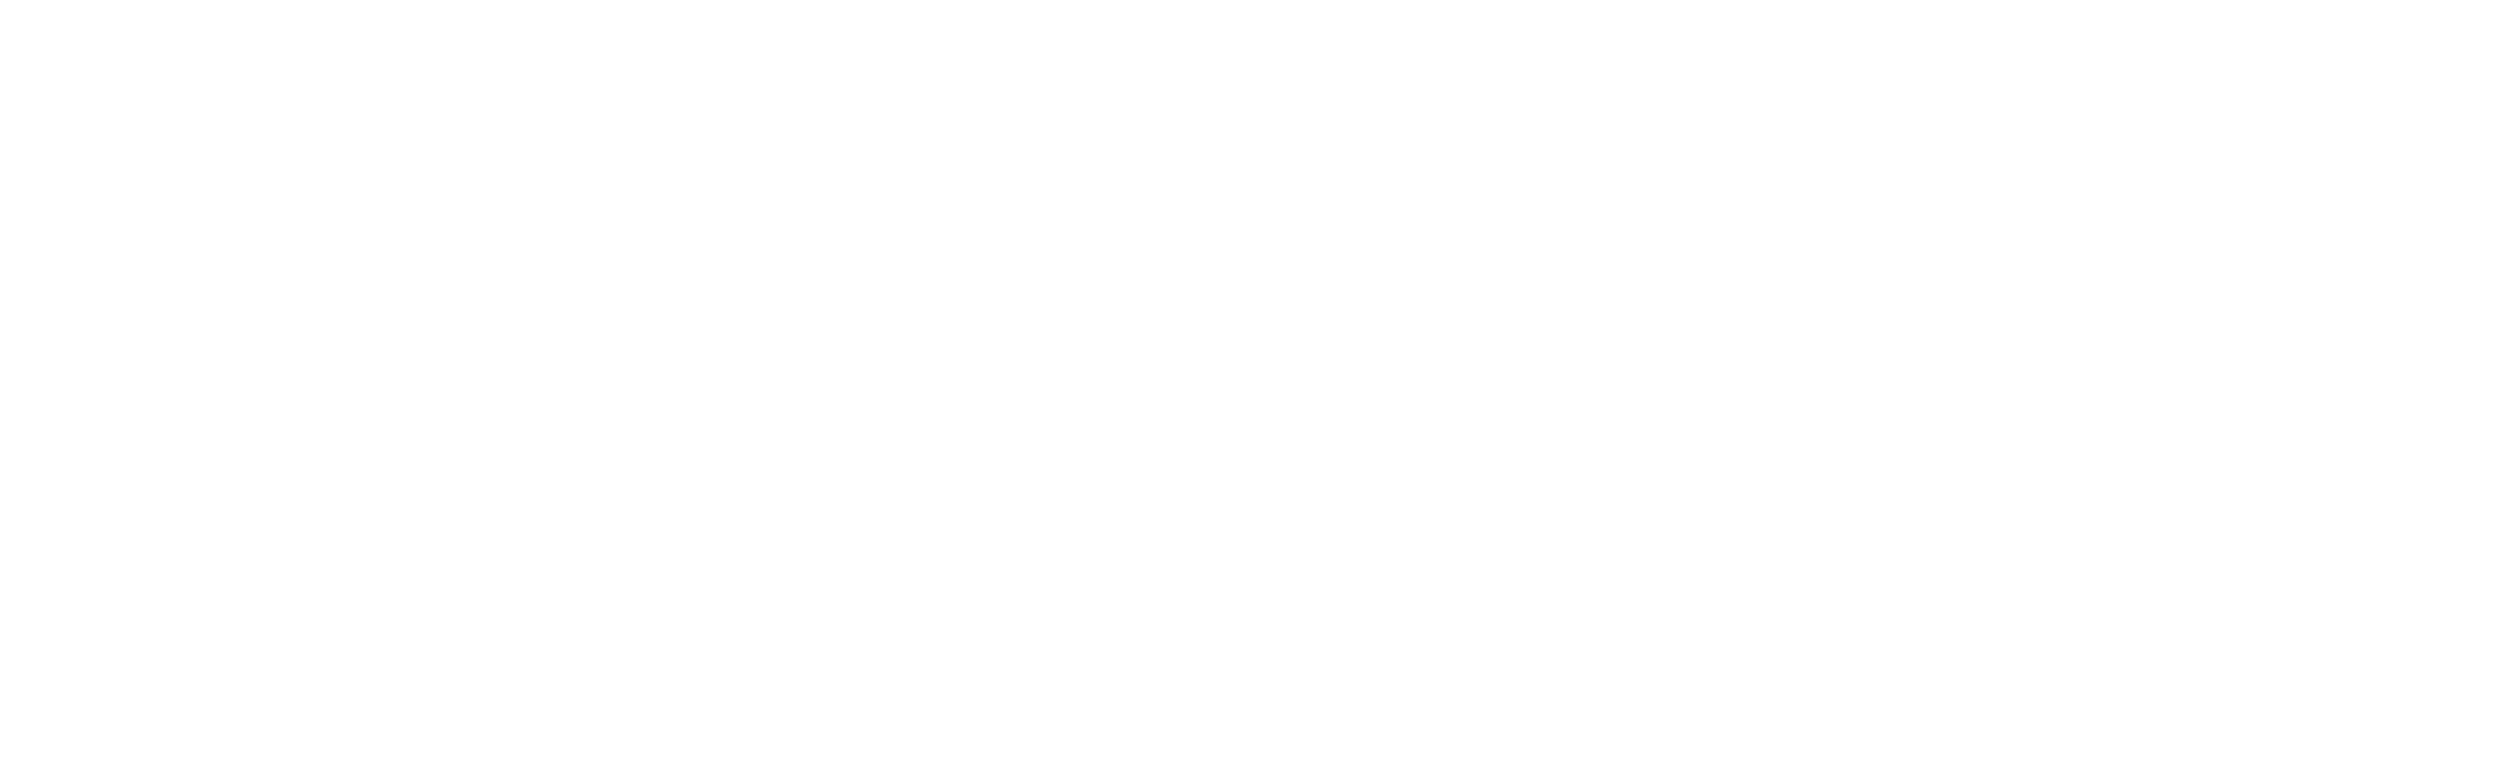 Airfoil_Group_Reverse_Horizontal-01-1